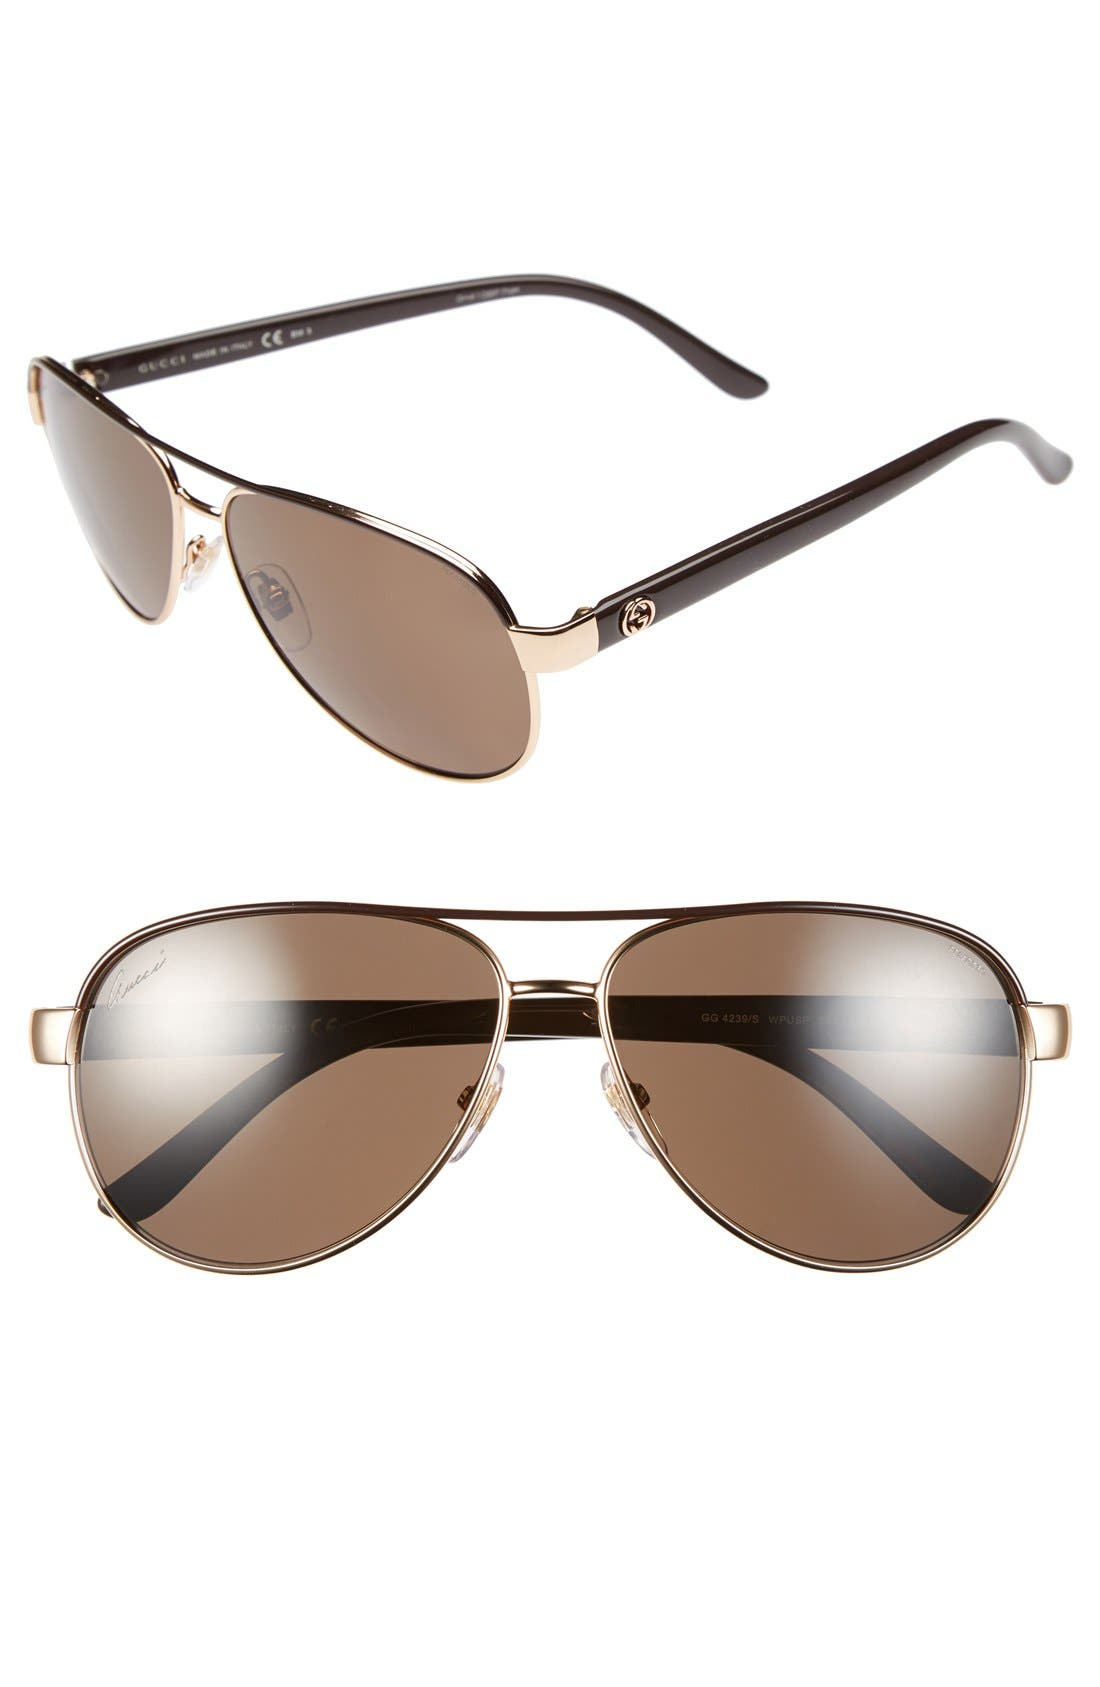 Alternate Image 1 Selected - Gucci 58mm Polarized Aviator Sunglasses